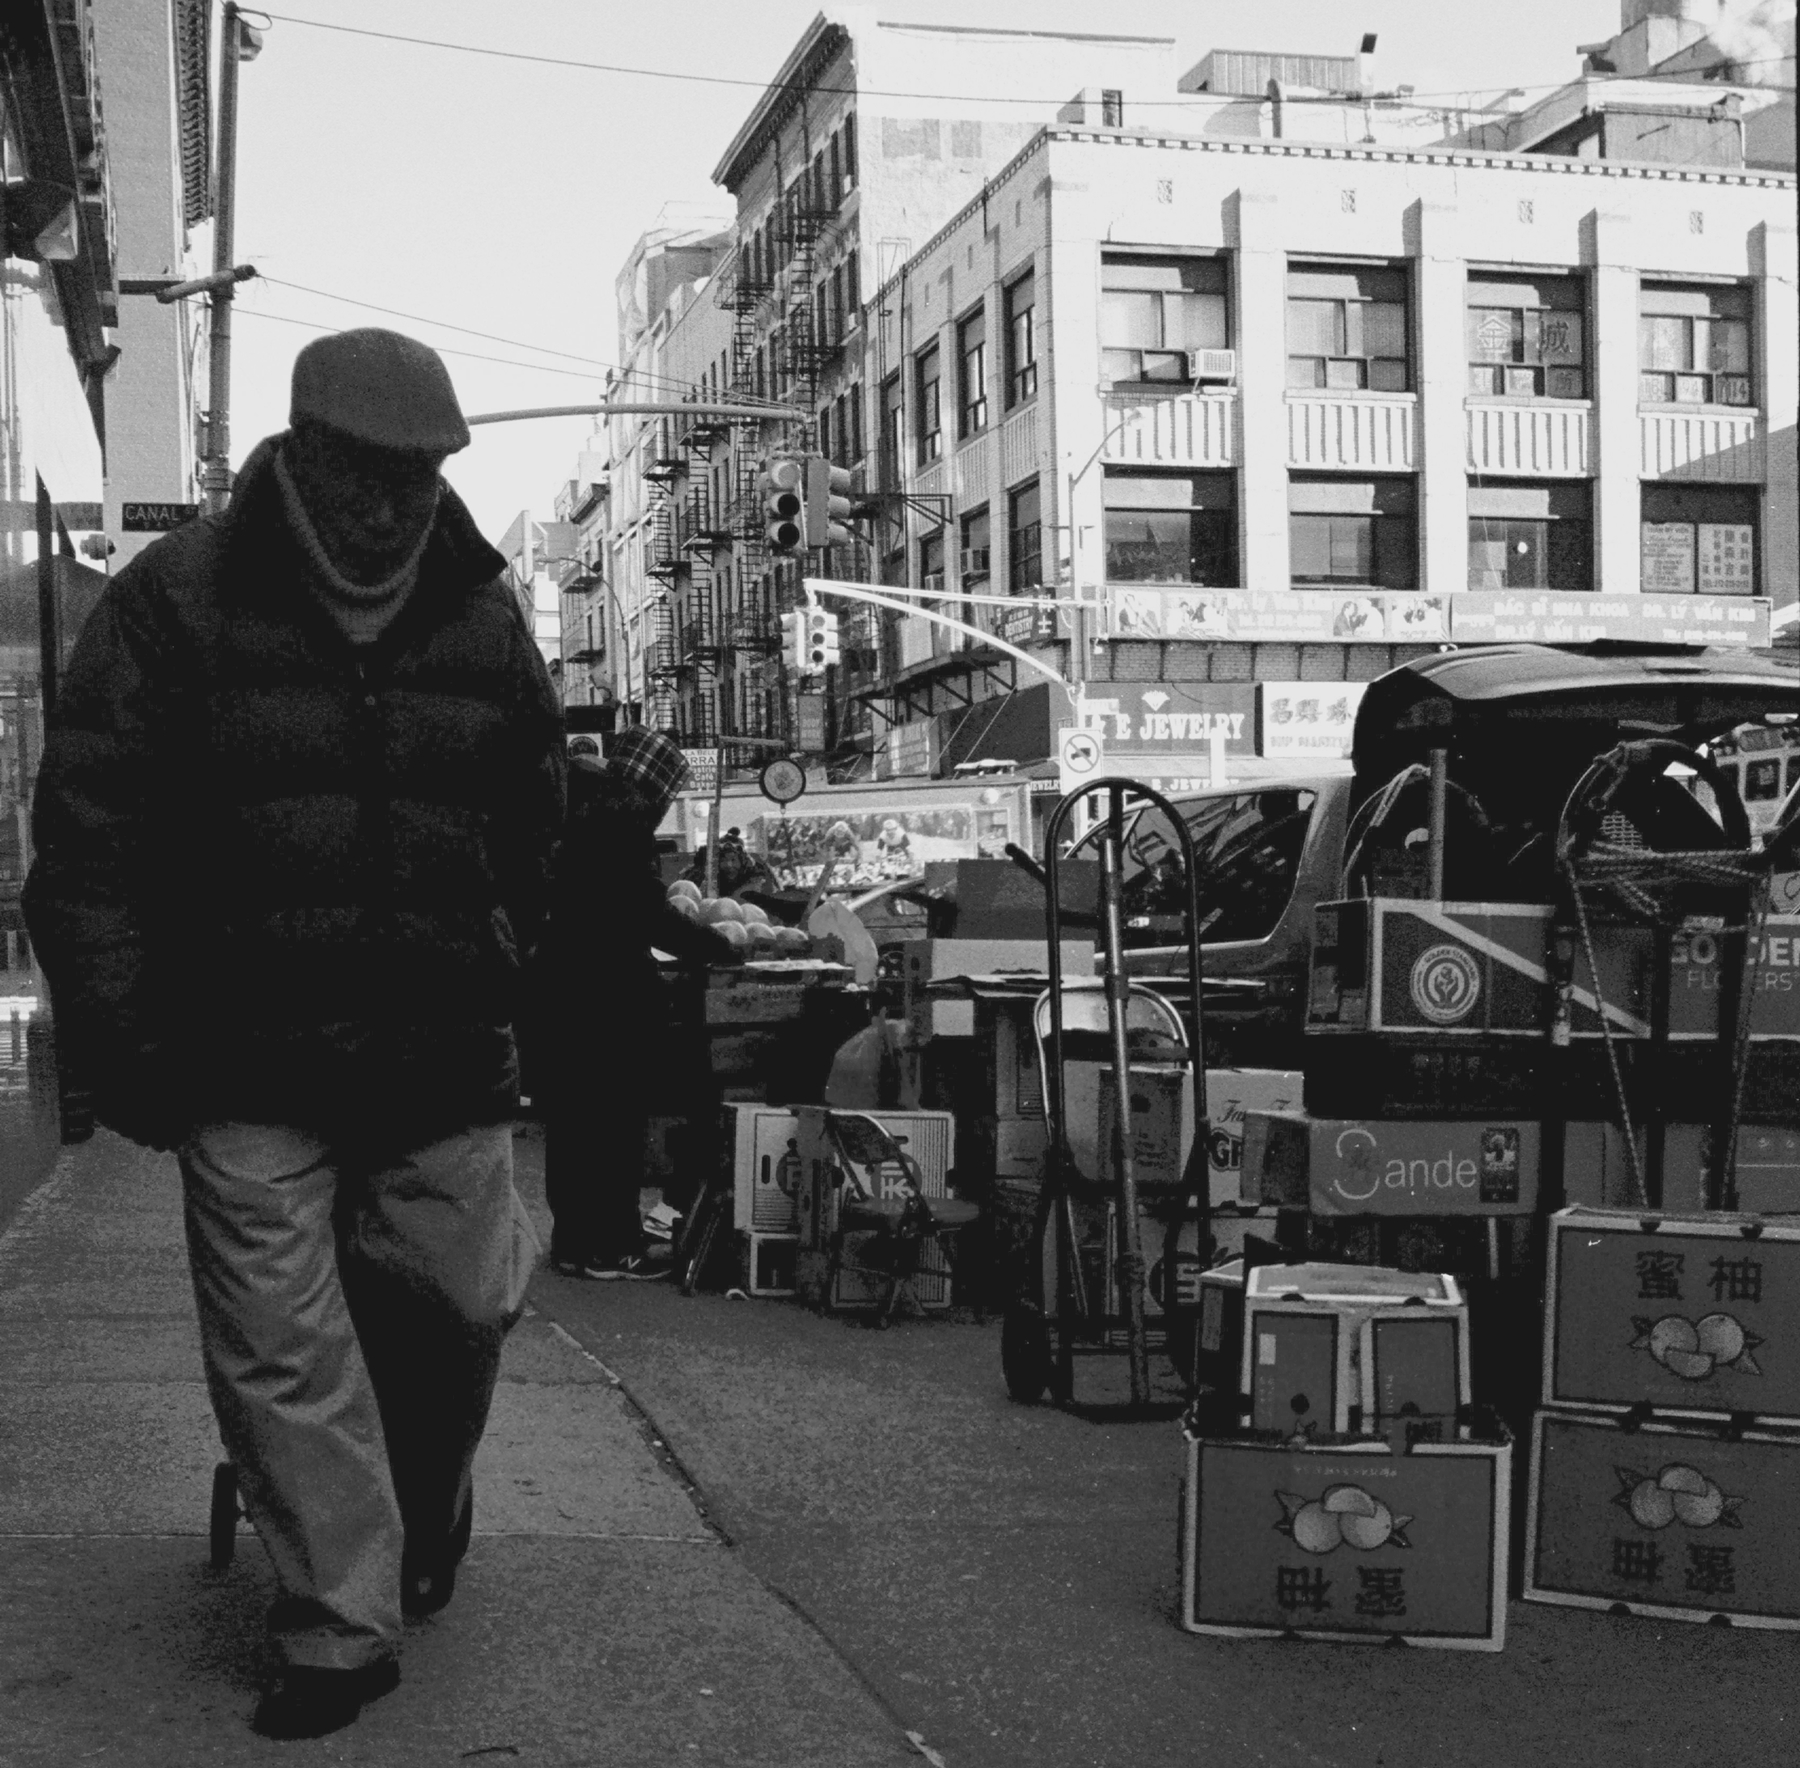 Canal Street Boxing & Journey. Chinatown, Downtown, Manhattan